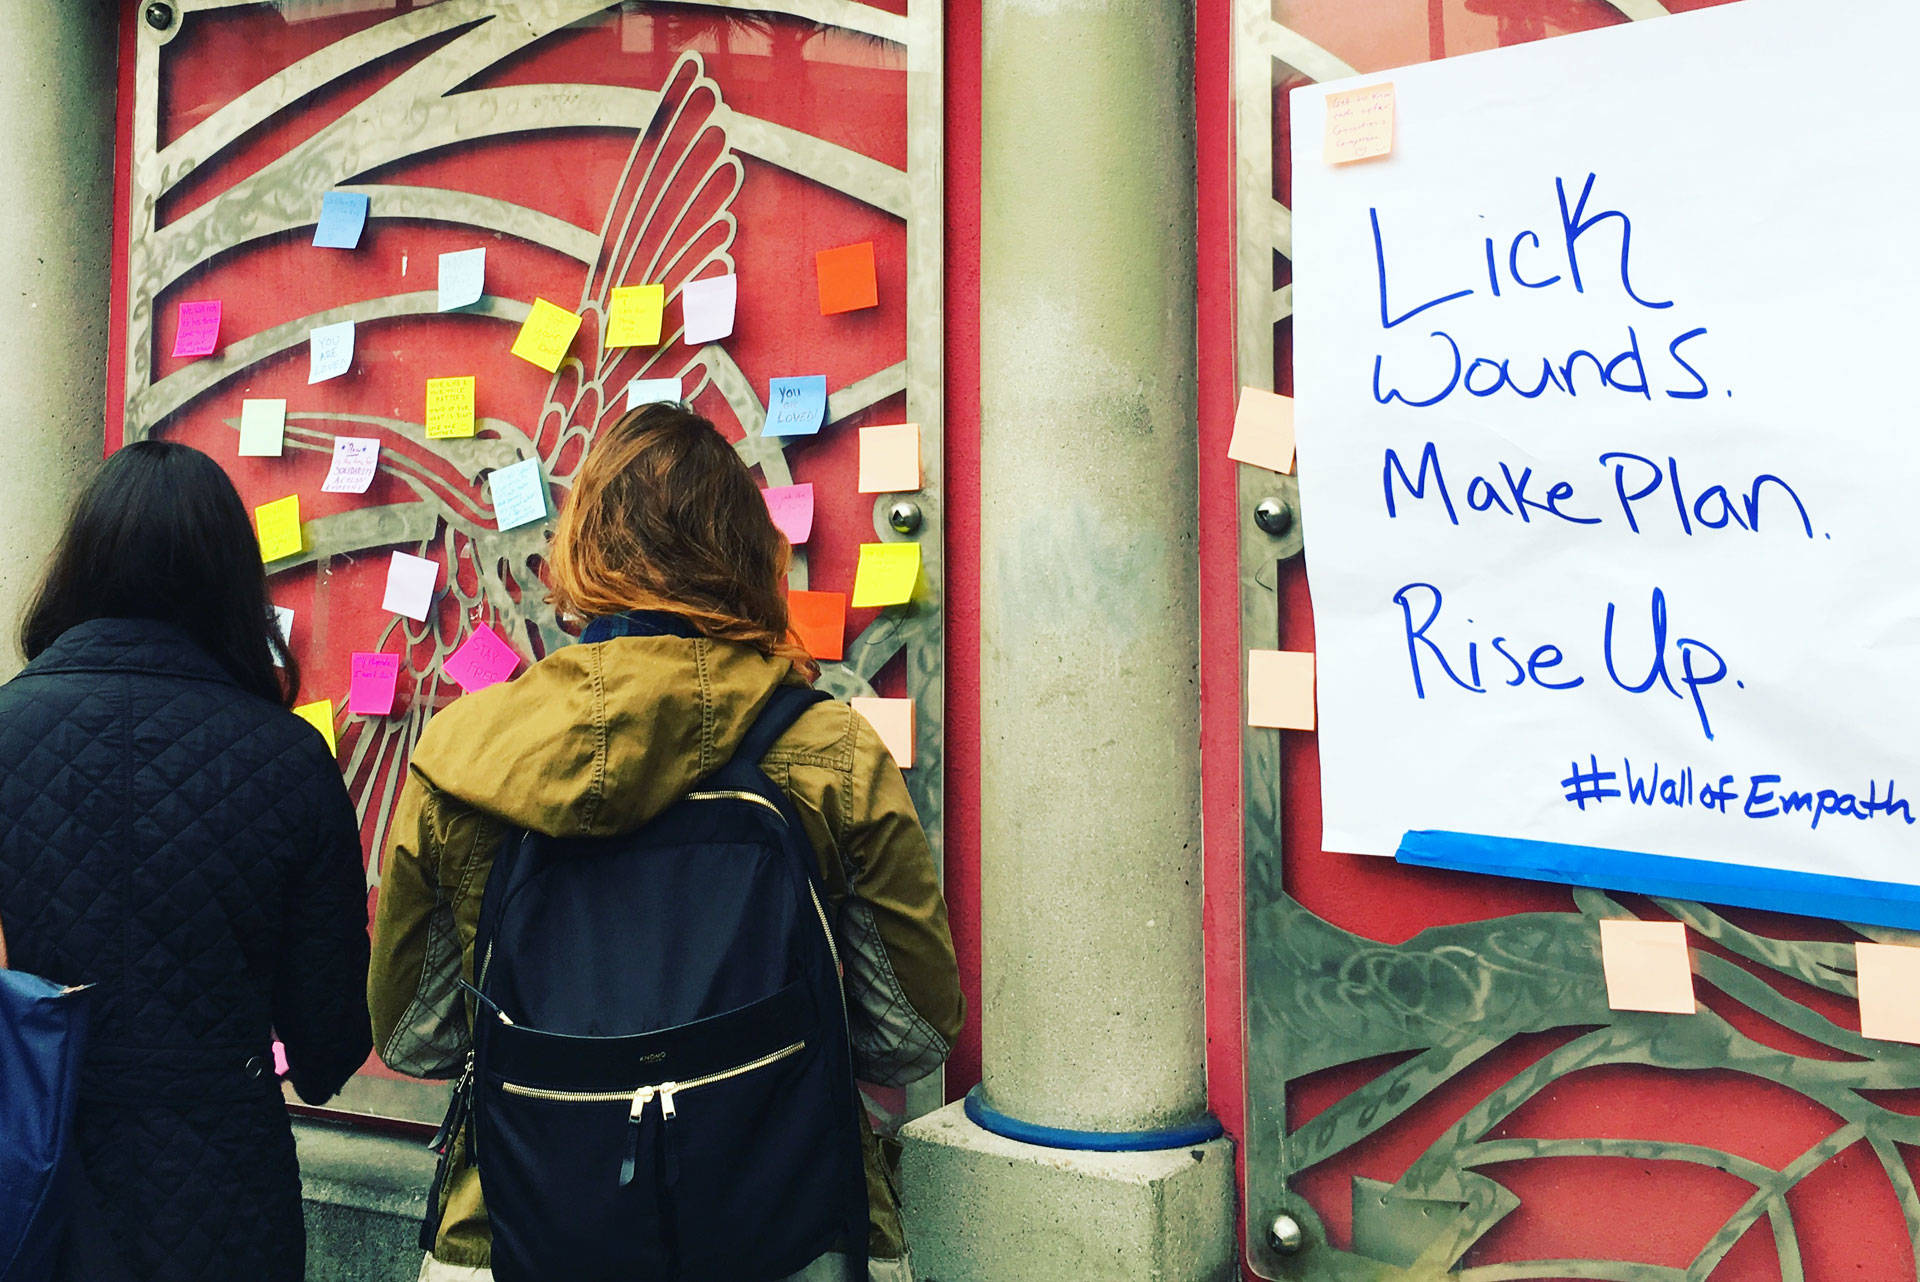 People write messages of support following Donald Trump's election victory on the walls at the 16th Street BART Station in San Francisco on Monday, Nov. 14. Rachel Roberson/KQED